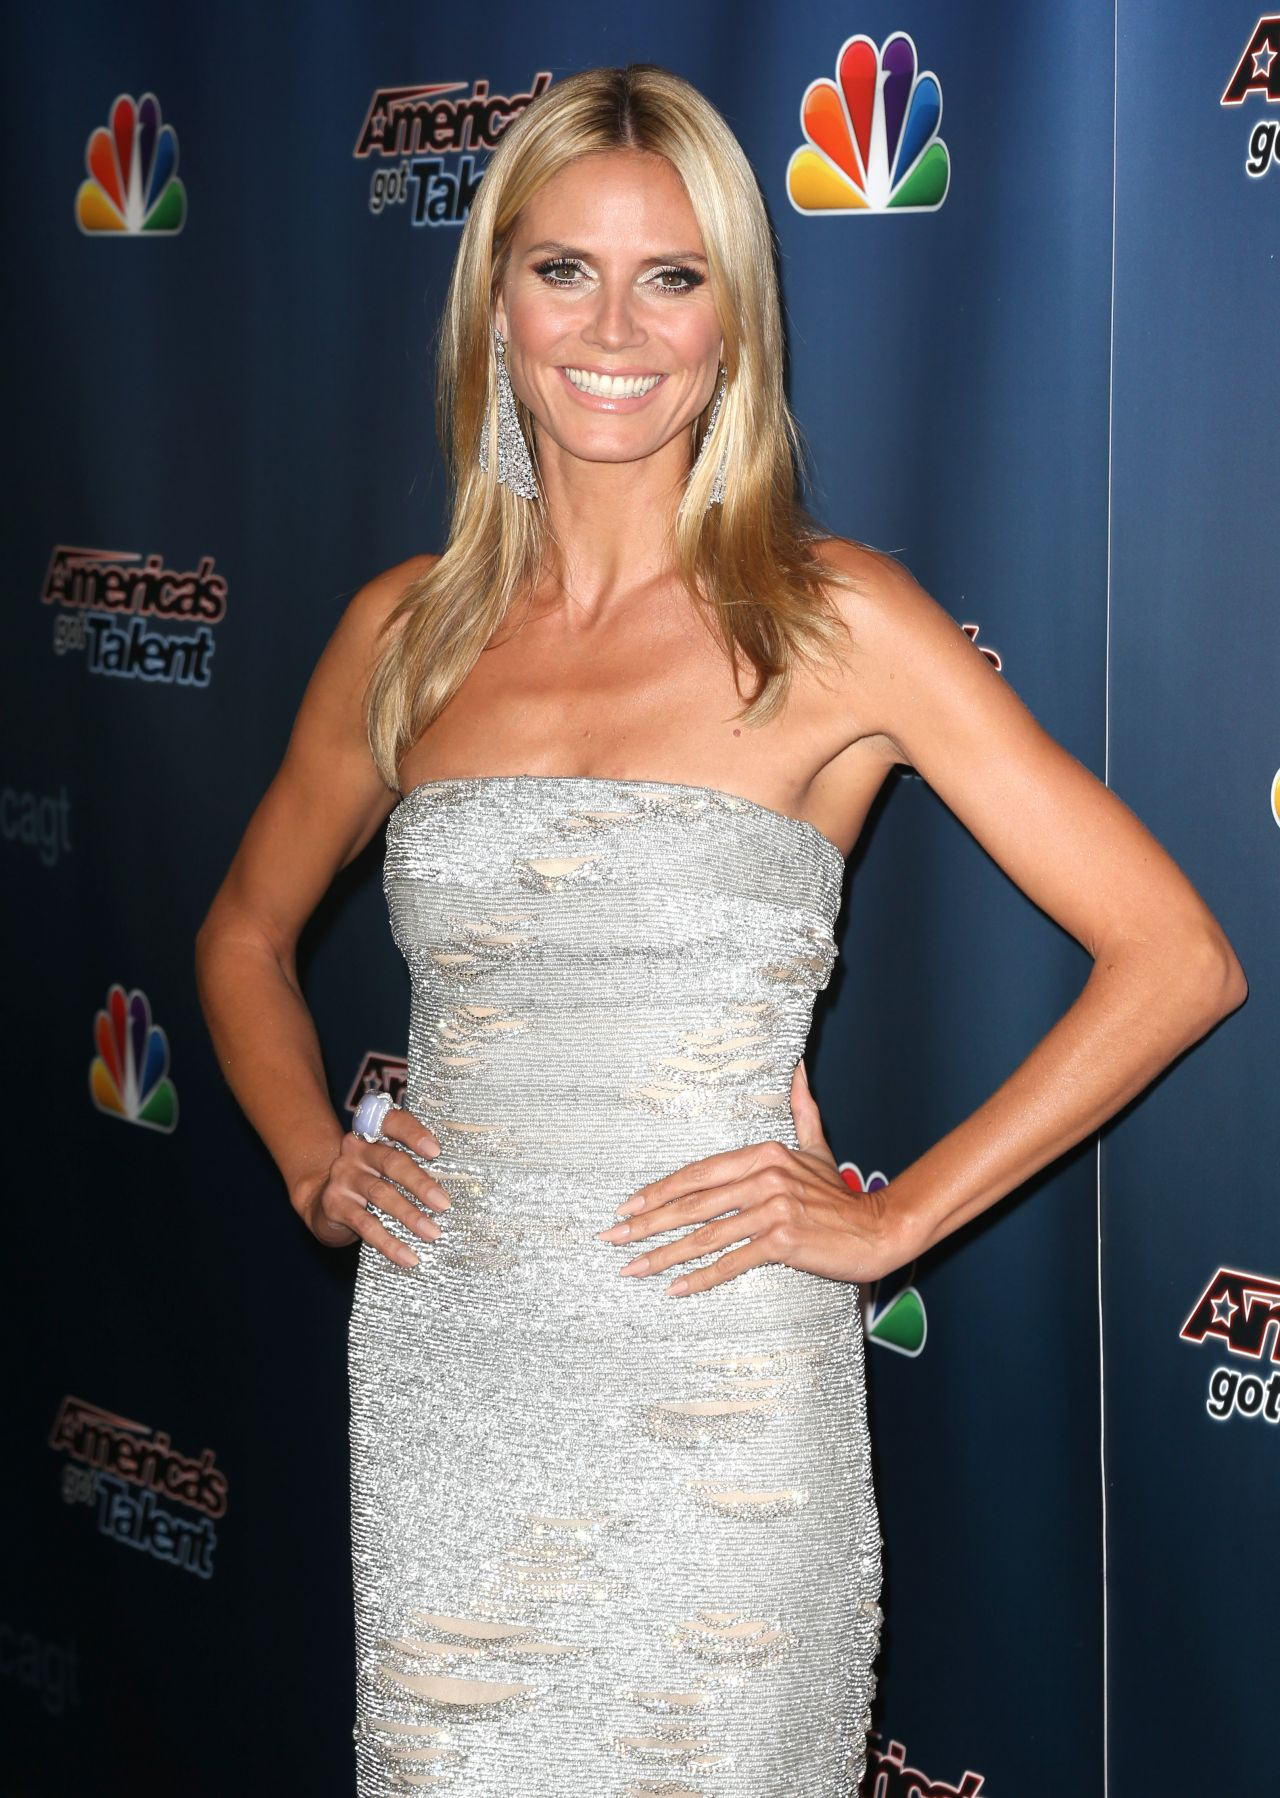 Heidi Klum – 'America's Got Talent' Post-Show Red Carpet in New York City – August 2014